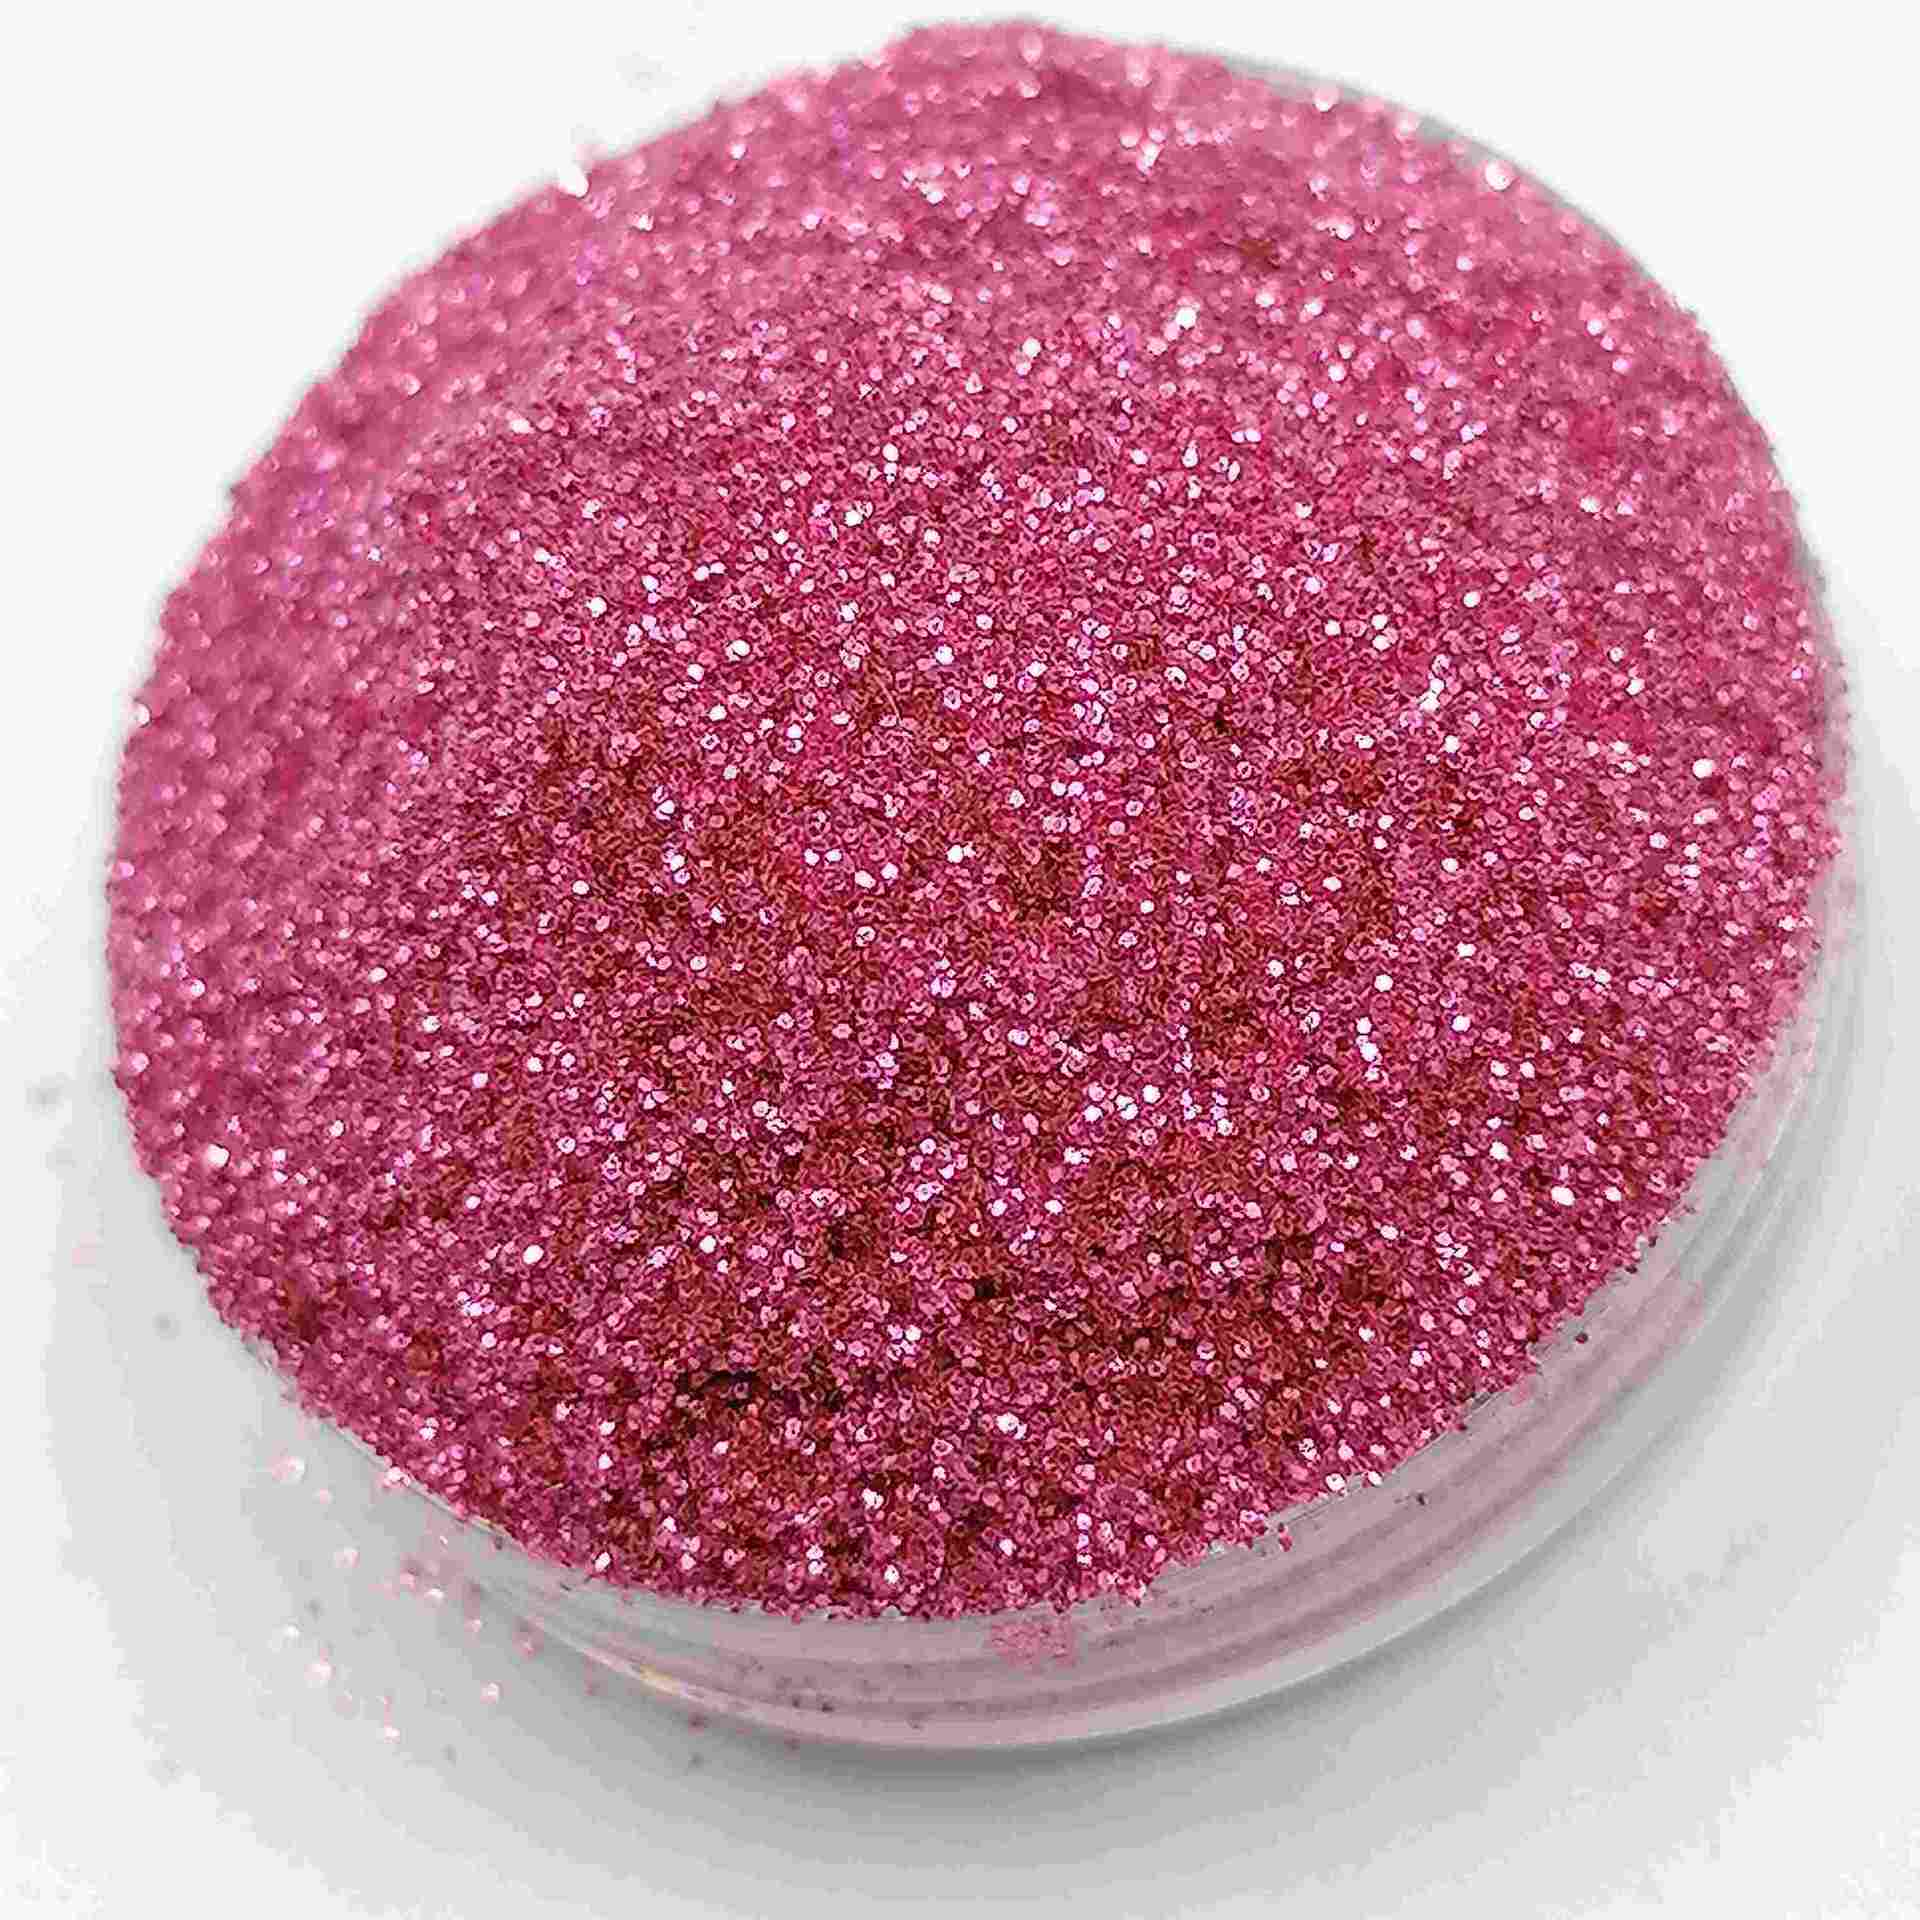 Factory Supply Colorful Wholesale Bulk Biodegradable Glitter Powder for Crafts chunky holographic Glitter